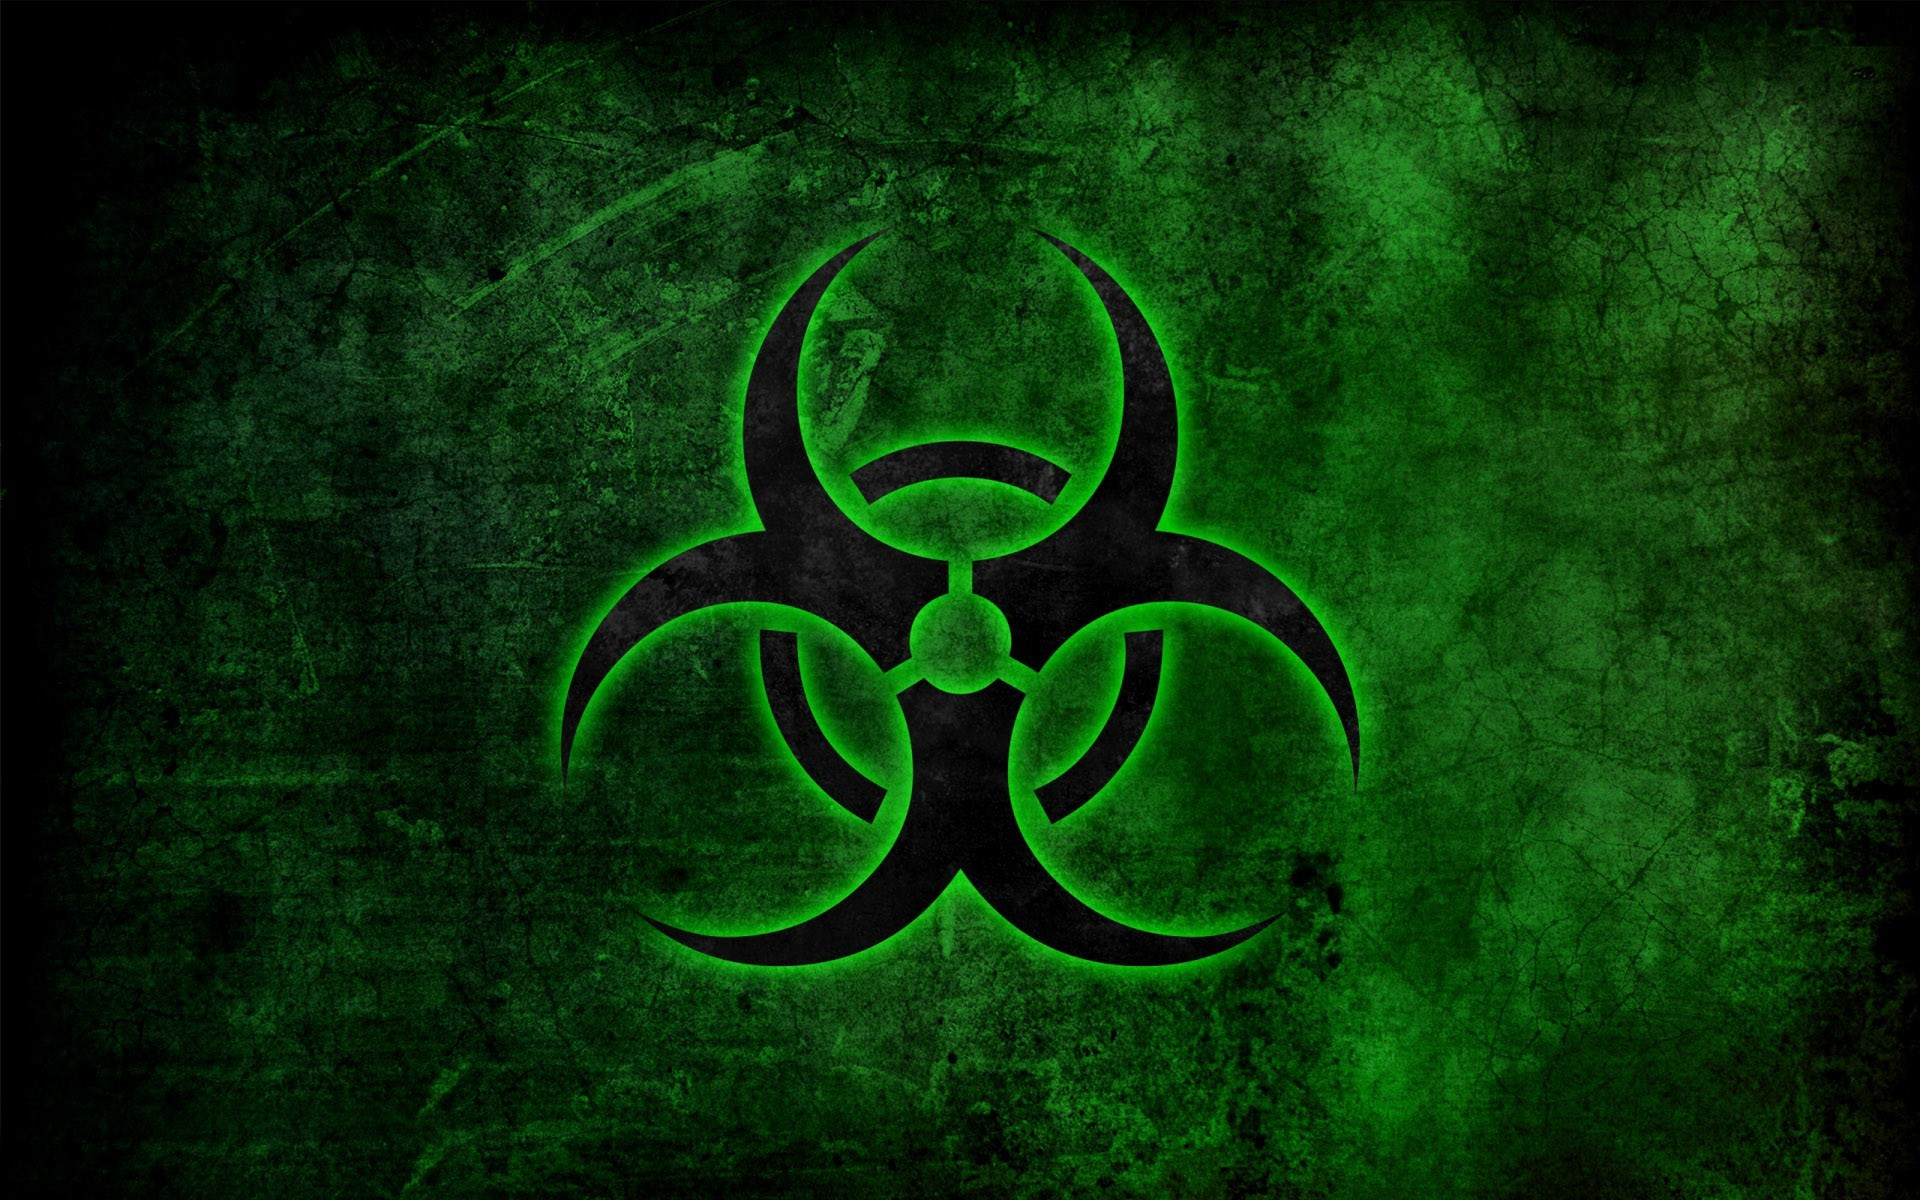 Biohazard symbol wallpaper 10778 1920x1200